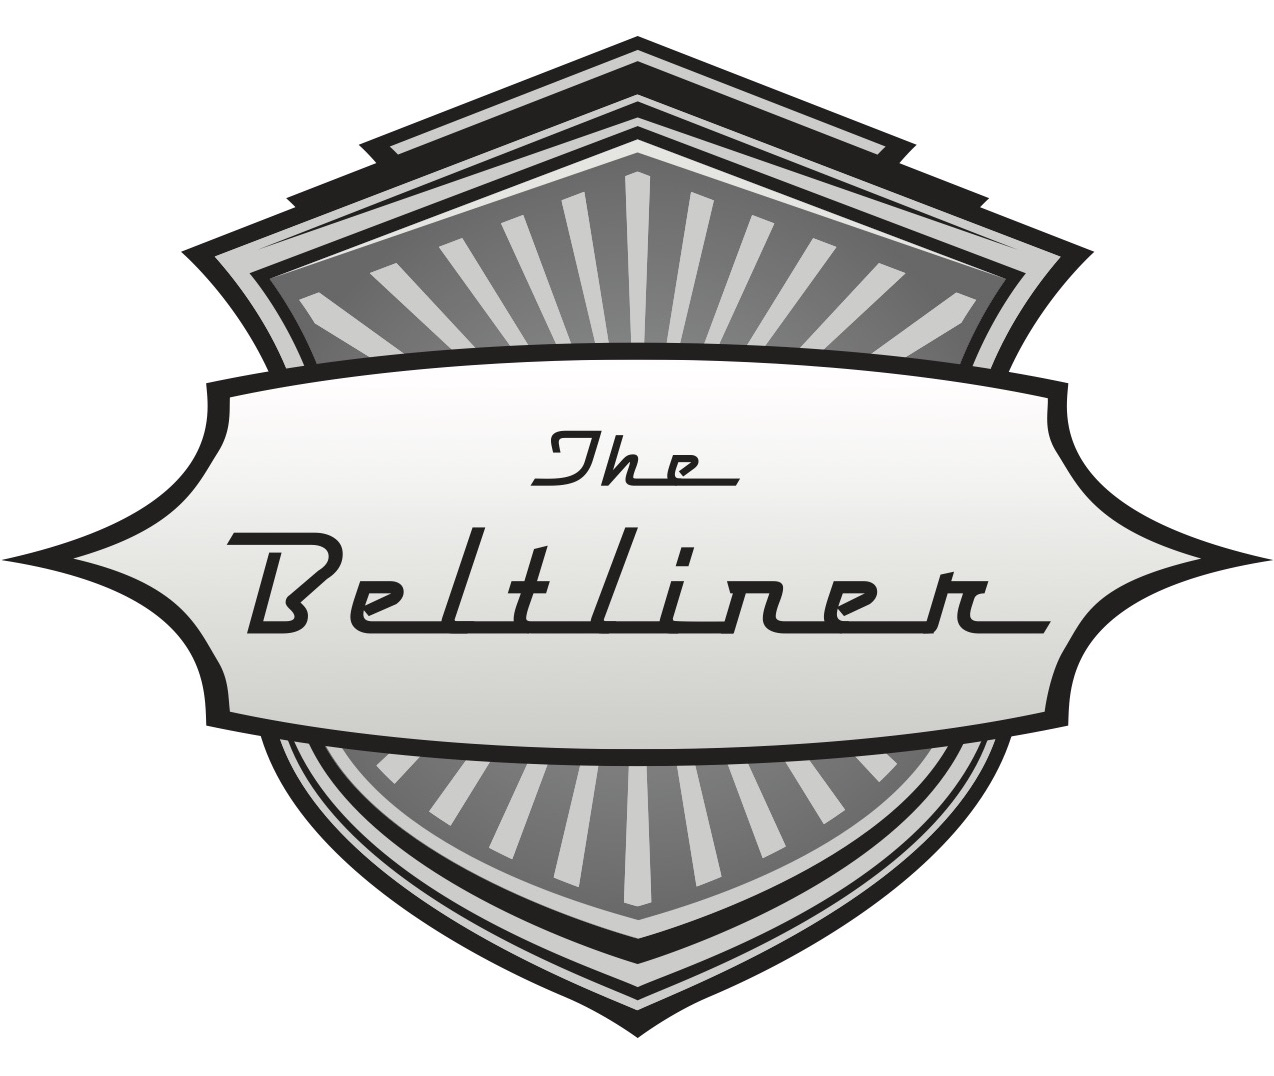 The Beltliner